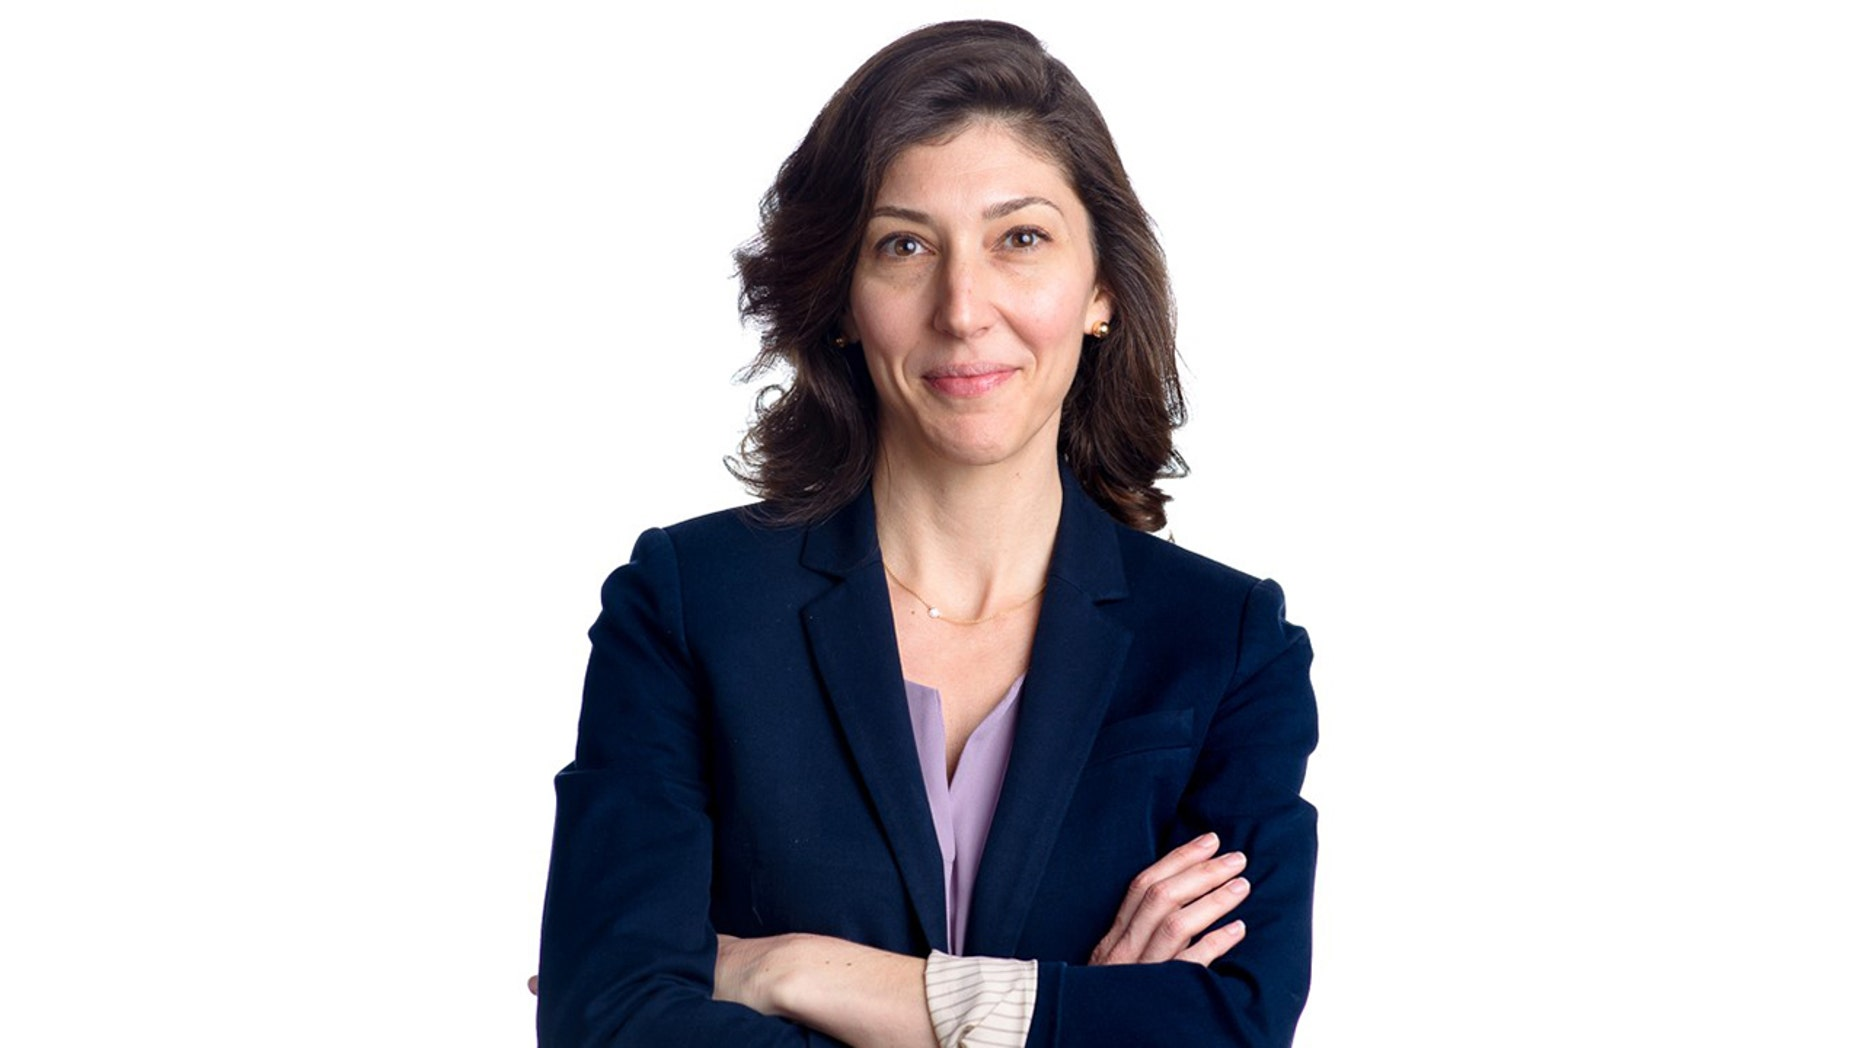 Former FBI lawyer Lisa Page backed away from a planned interview on Capitol Hill Wednesday.